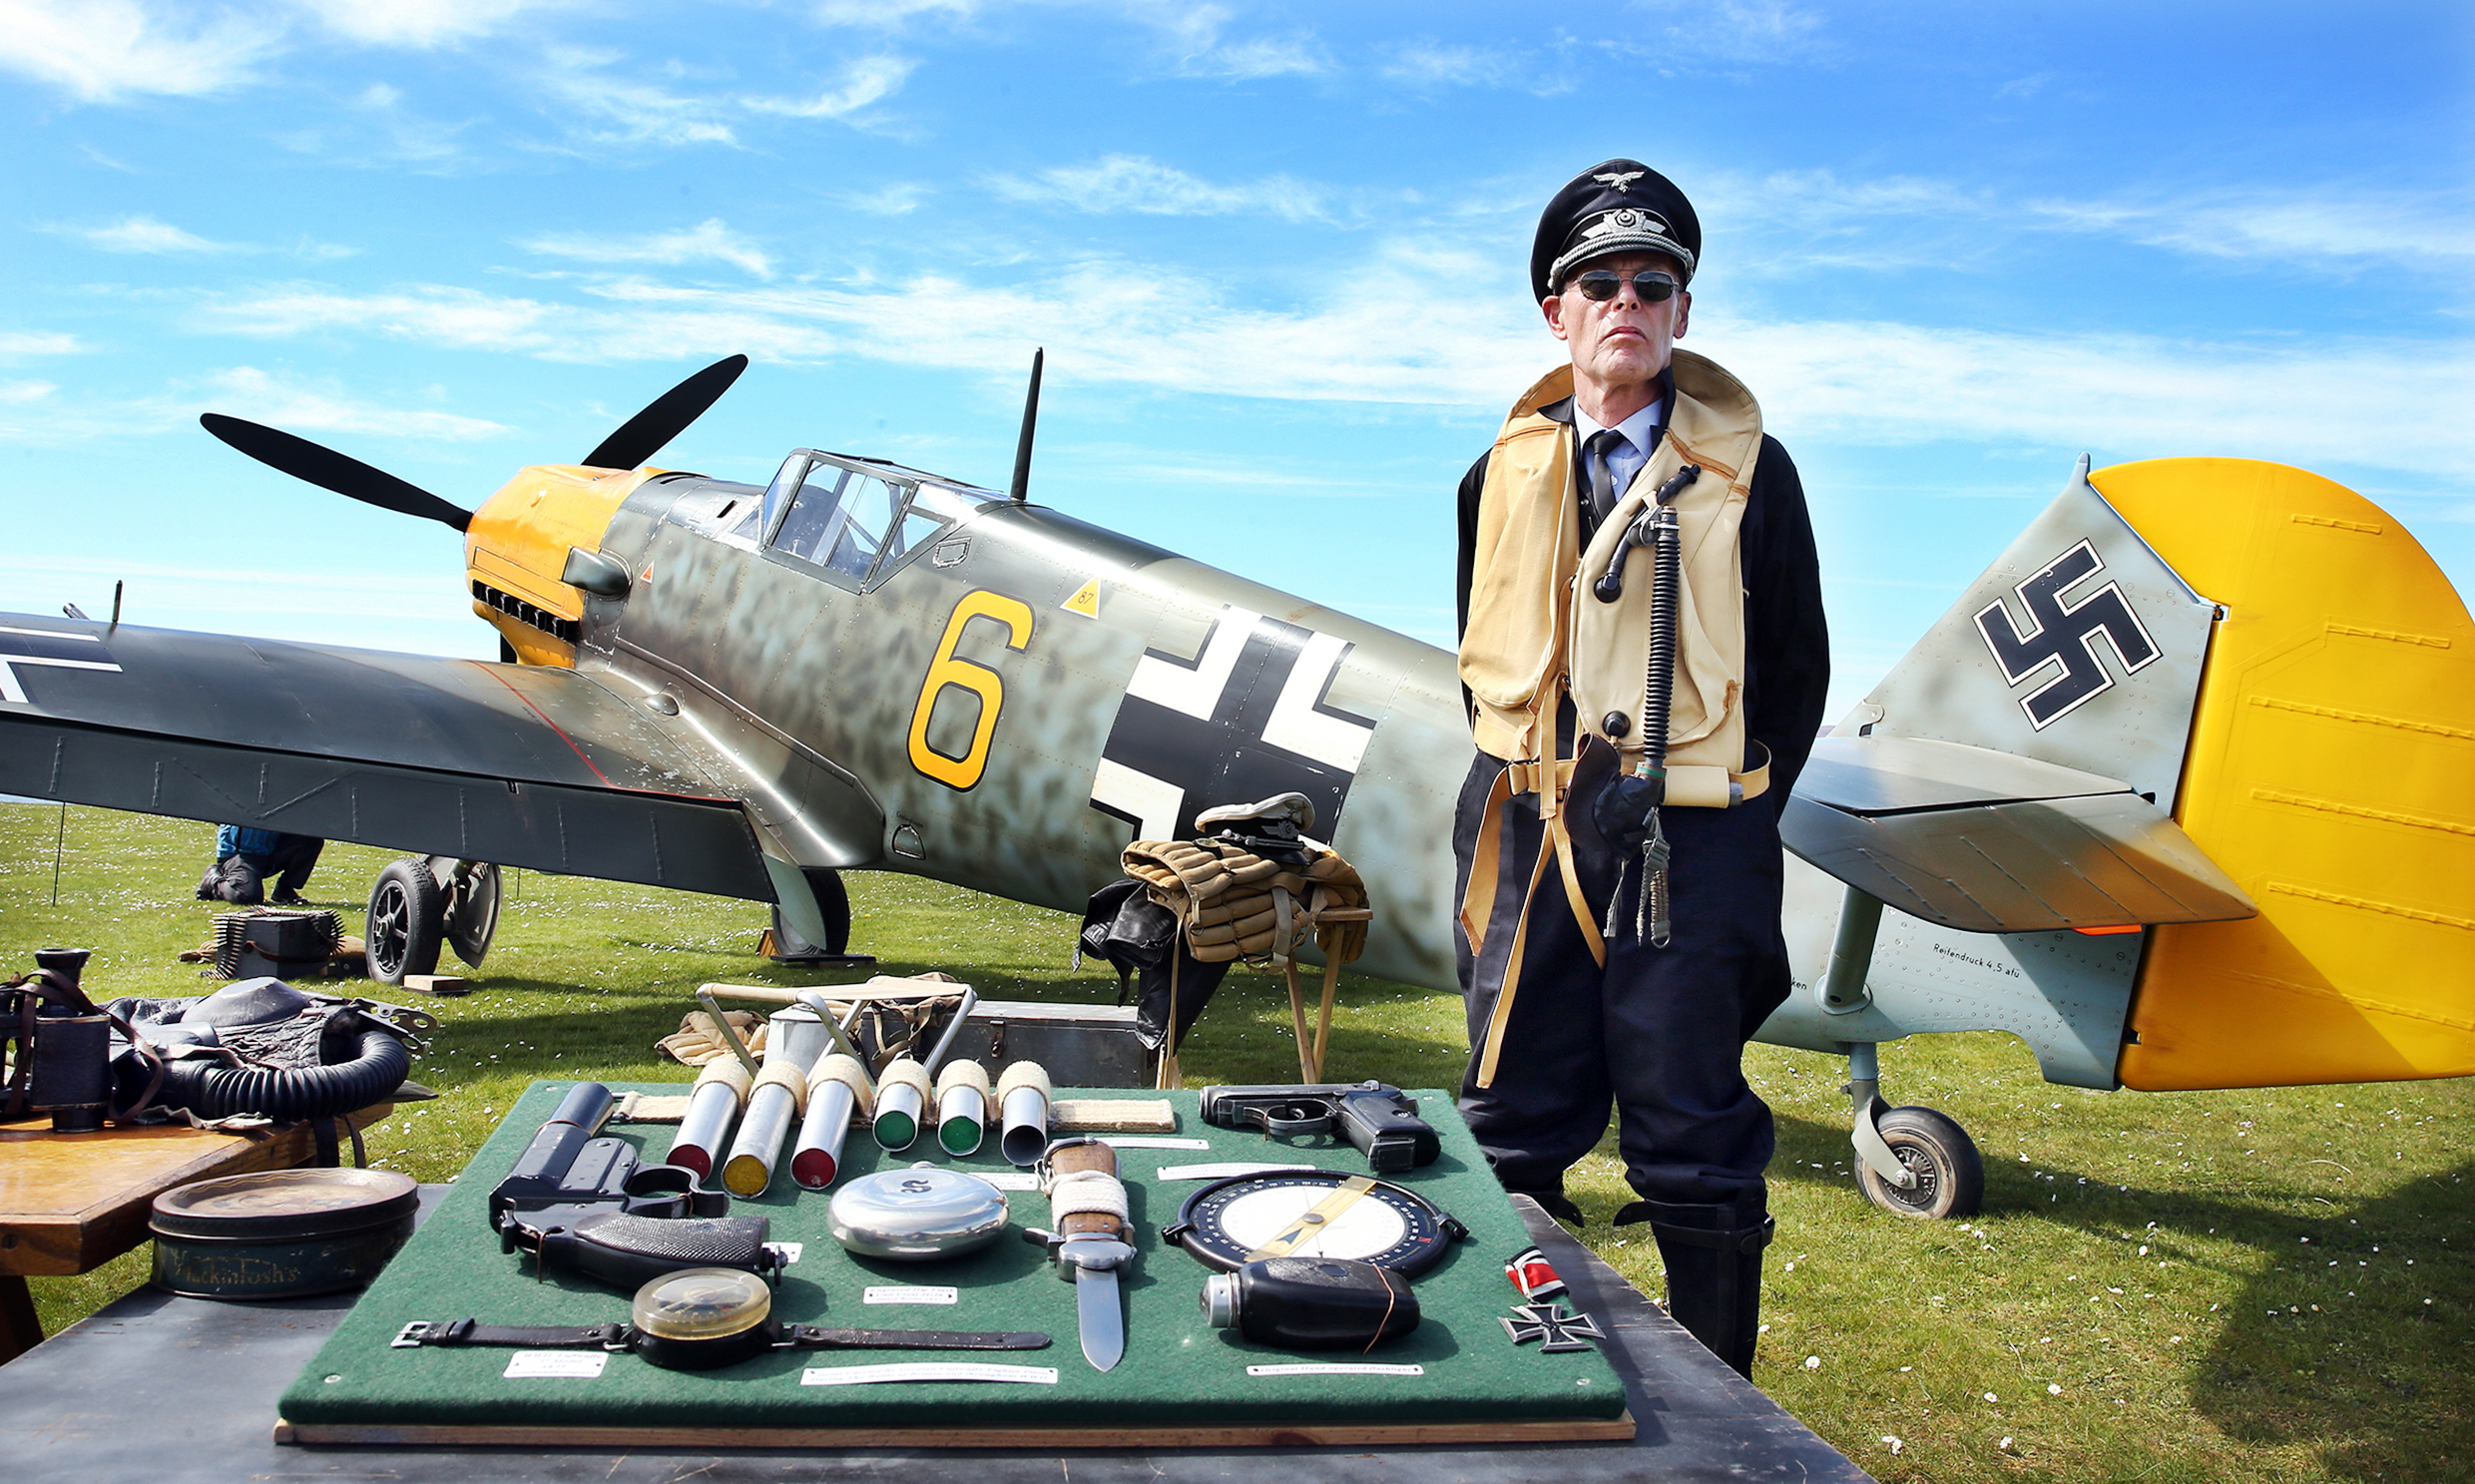 A full-size replica German Messerschmitt fighter plane and pilot Steve Heappey, were a popular attraction at Battle of Britain camp at Aultbea.